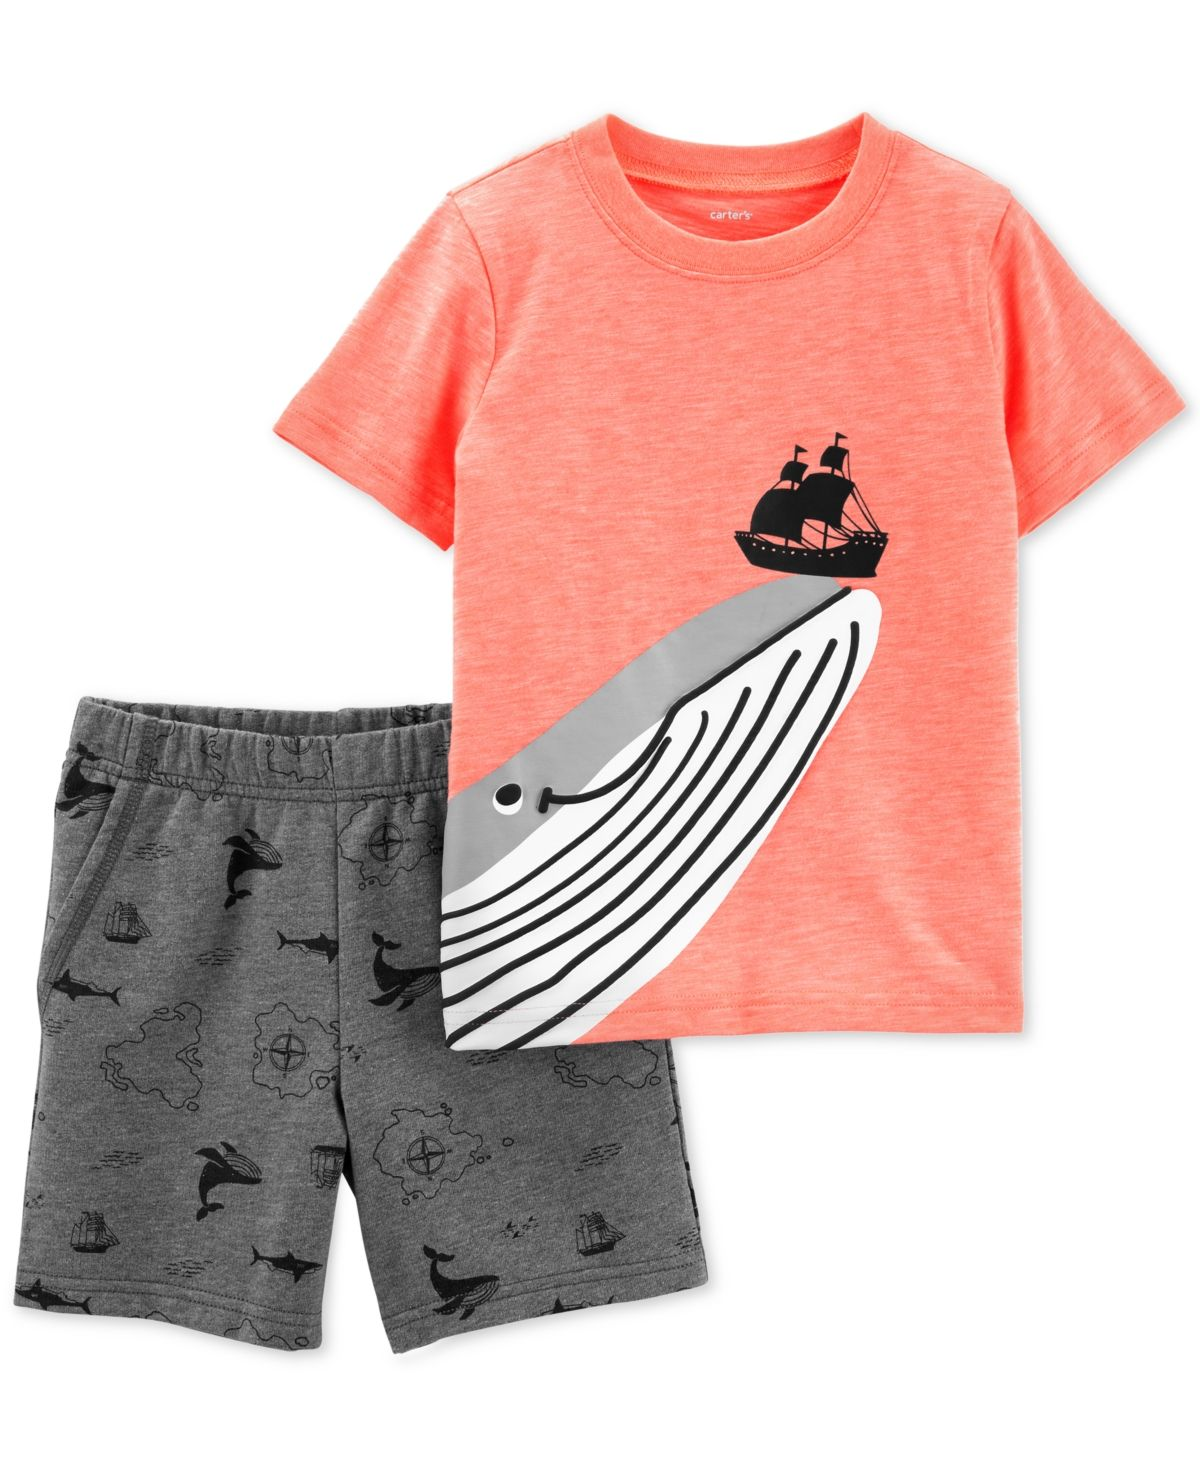 Toddler Baby Boy Clothes Shark Print Short Sleeve T-Shirt and Shorts Cotton 2PC Summer Outfit Set